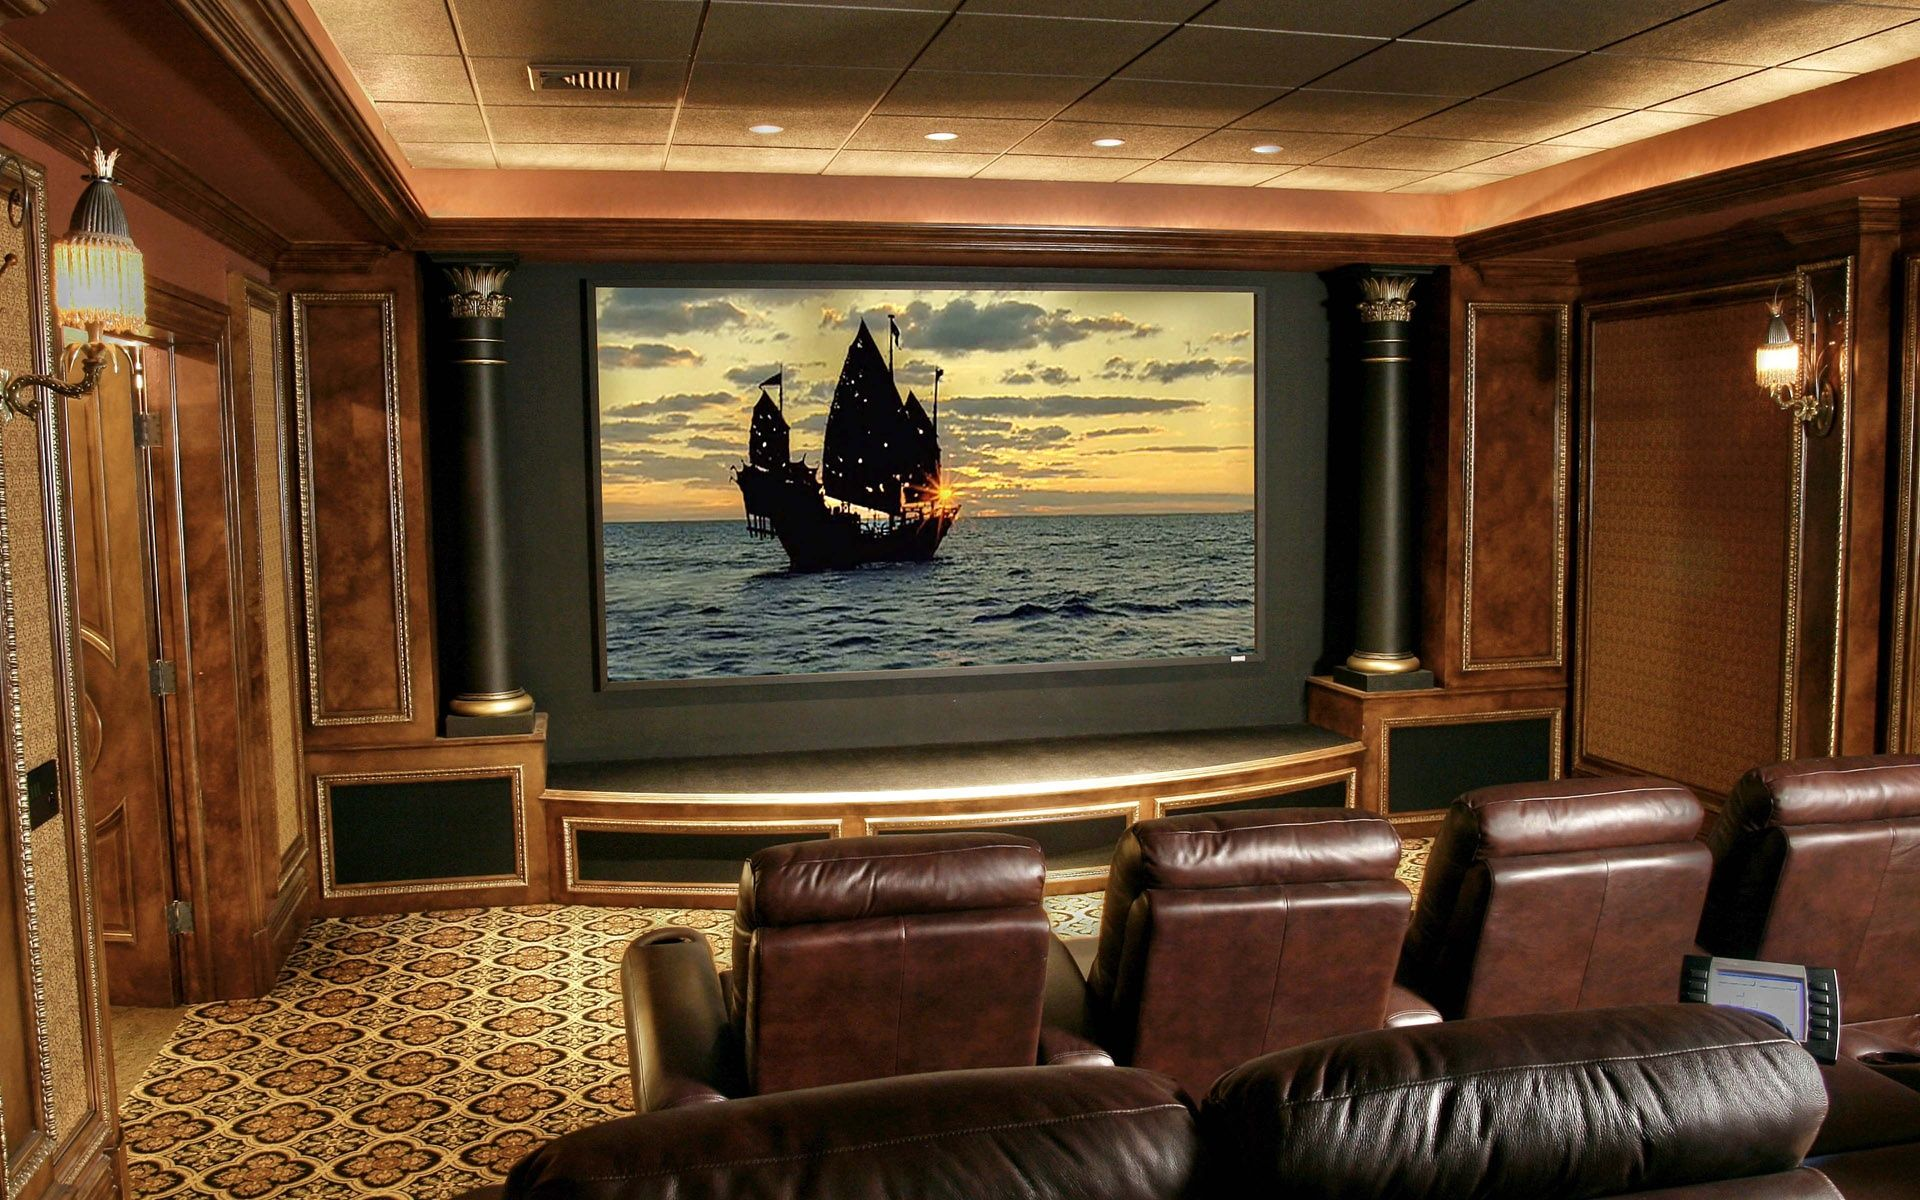 27 Awesome Home Media Room Ideas   Design Amazing Pictures27 Awesome Home Media Room Ideas   Design Amazing Pictures   Room  . Home Theater Cabinet Design. Home Design Ideas